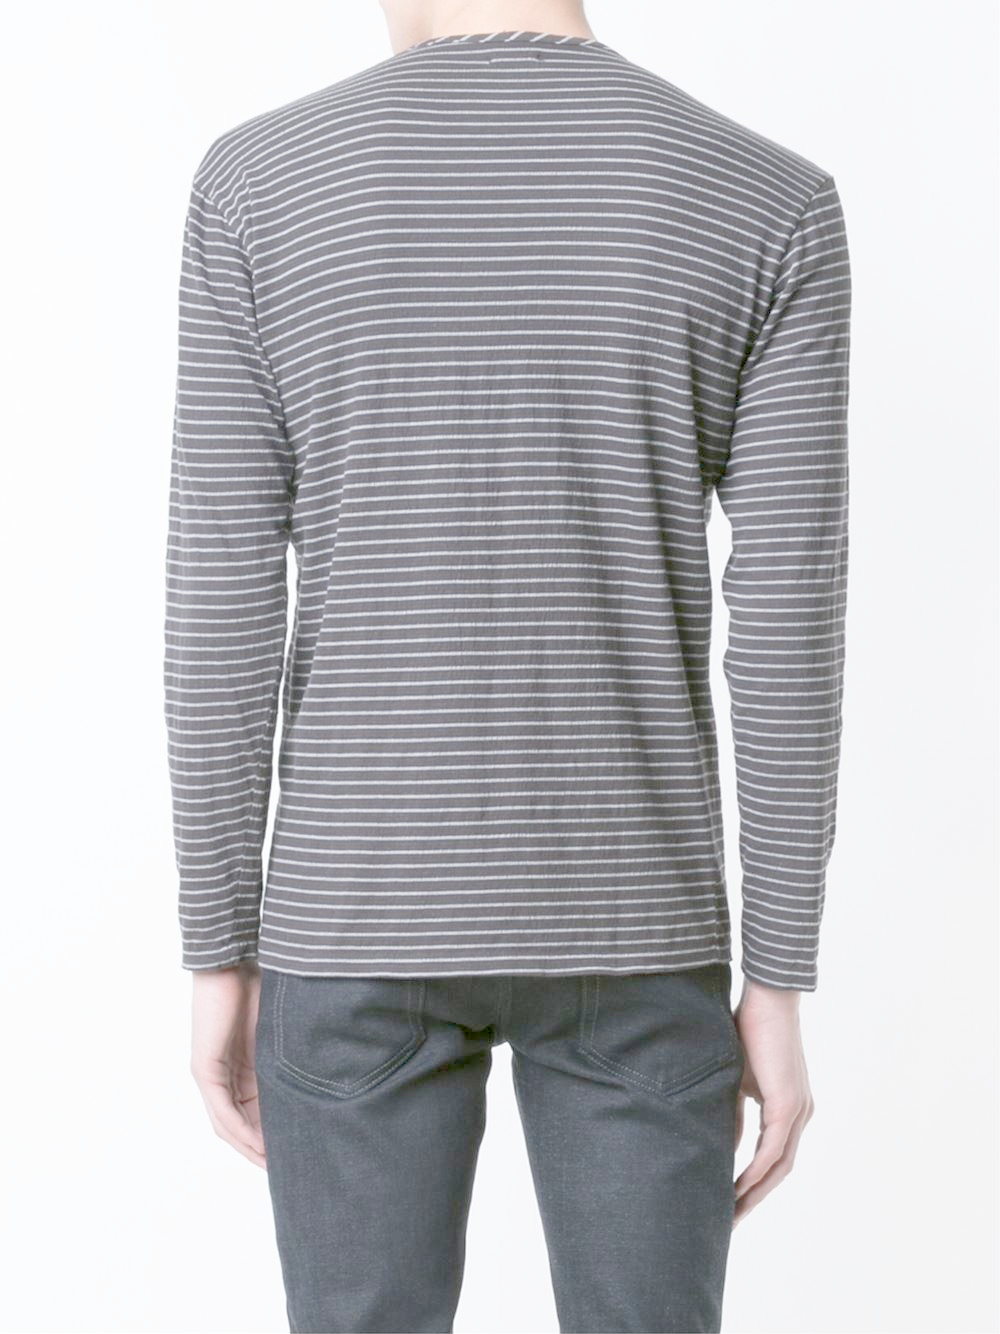 Lyst cwst long sleeve striped t shirt in black for men for Mens striped long sleeve t shirt